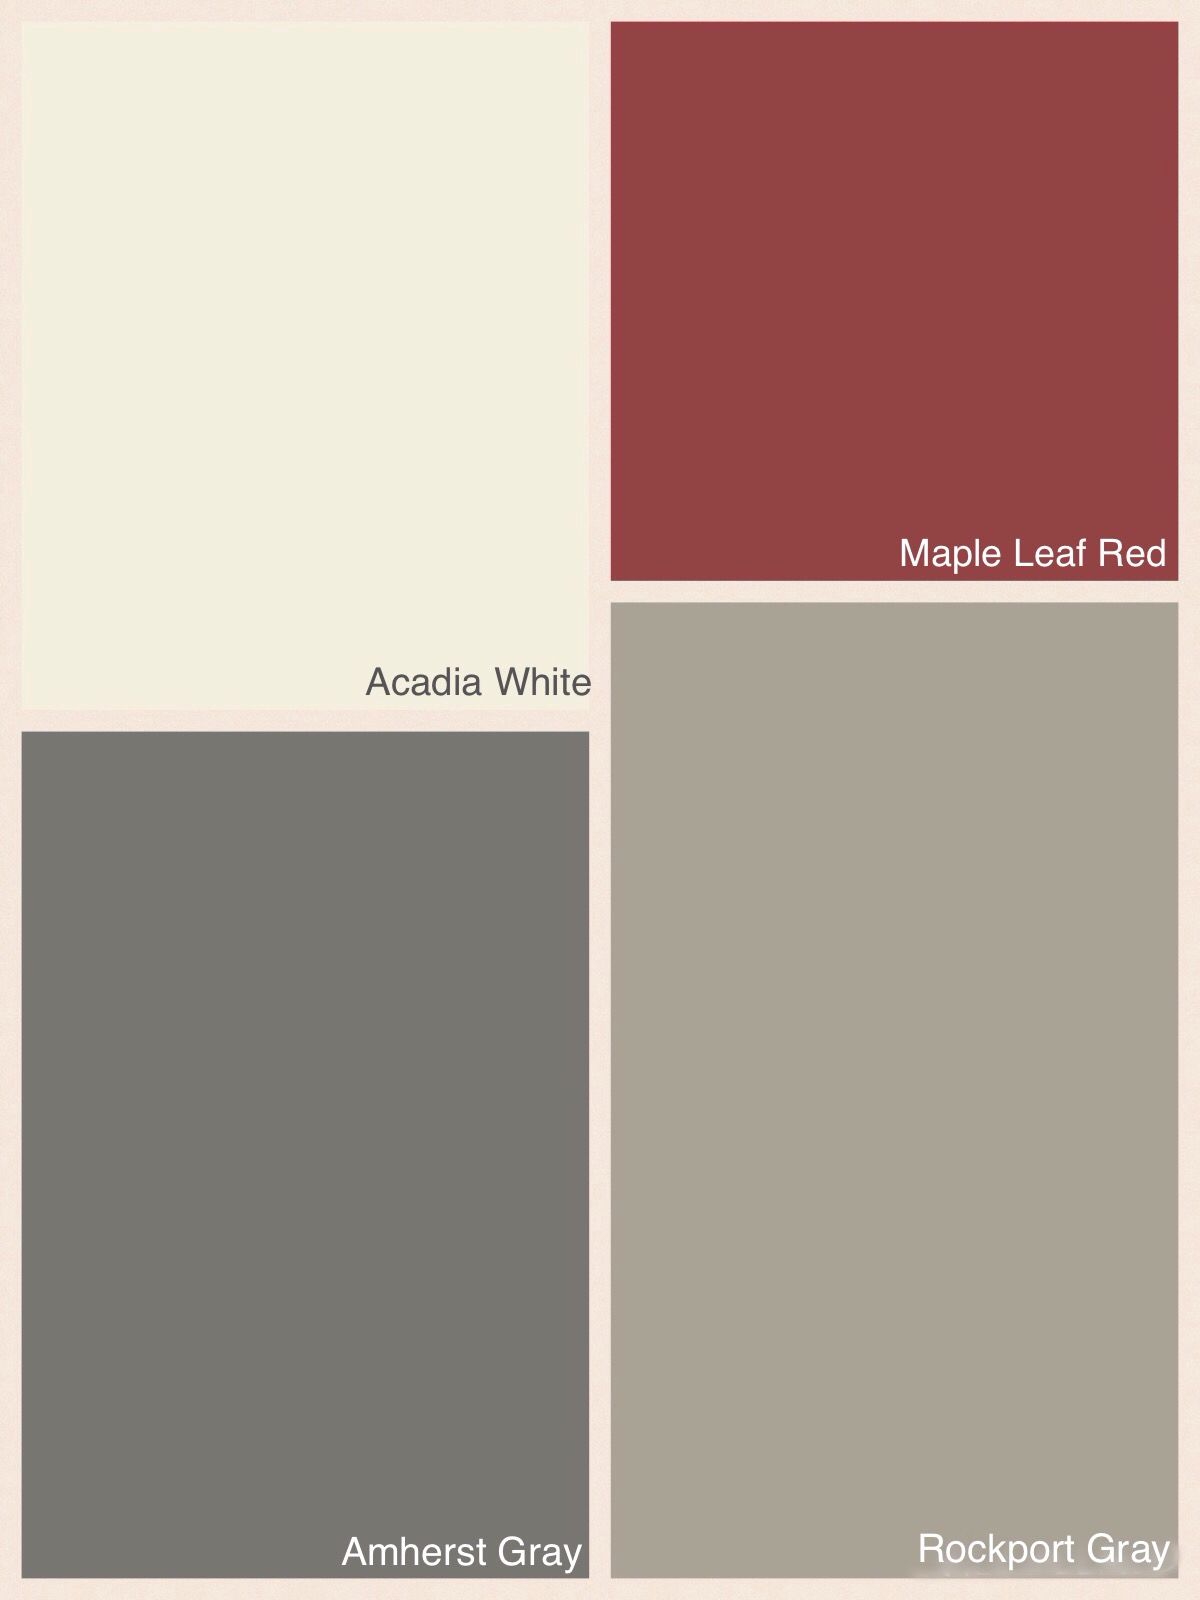 Benjamin Moore Colours For Exterior Of House Main Colour Rockport Gray Trim Acadia White